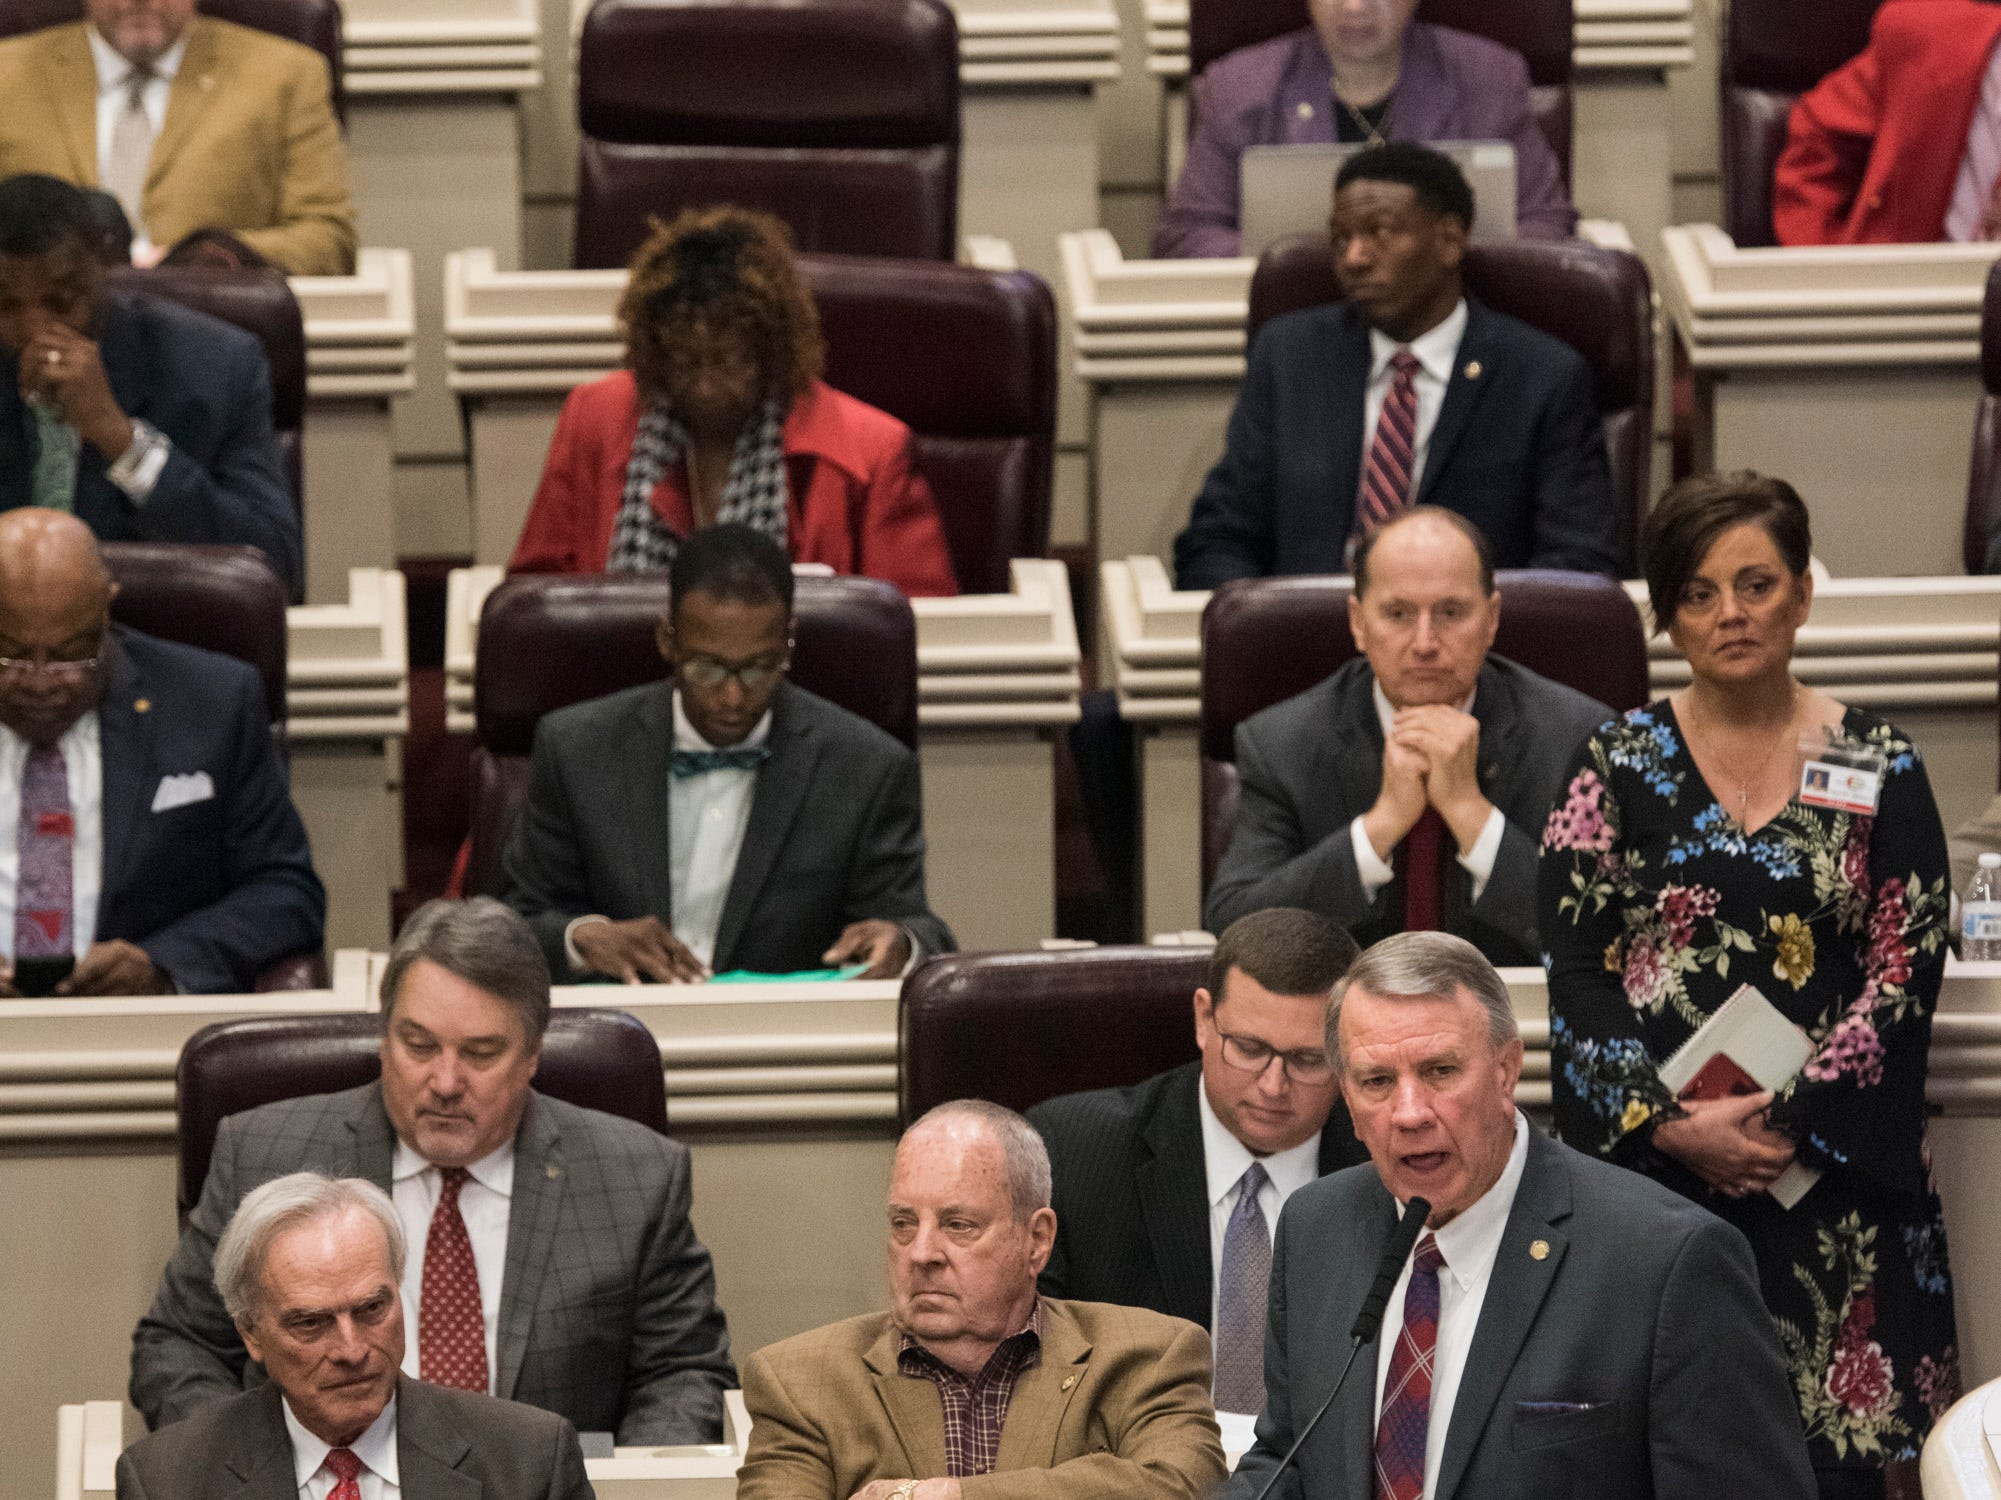 House Speaker Mac McCutcheon address the house during the 2019 Alabama Legislature's organizational session at the Alabama State House in Montgomery, Ala., on Tuesday, Jan. 8, 2019.